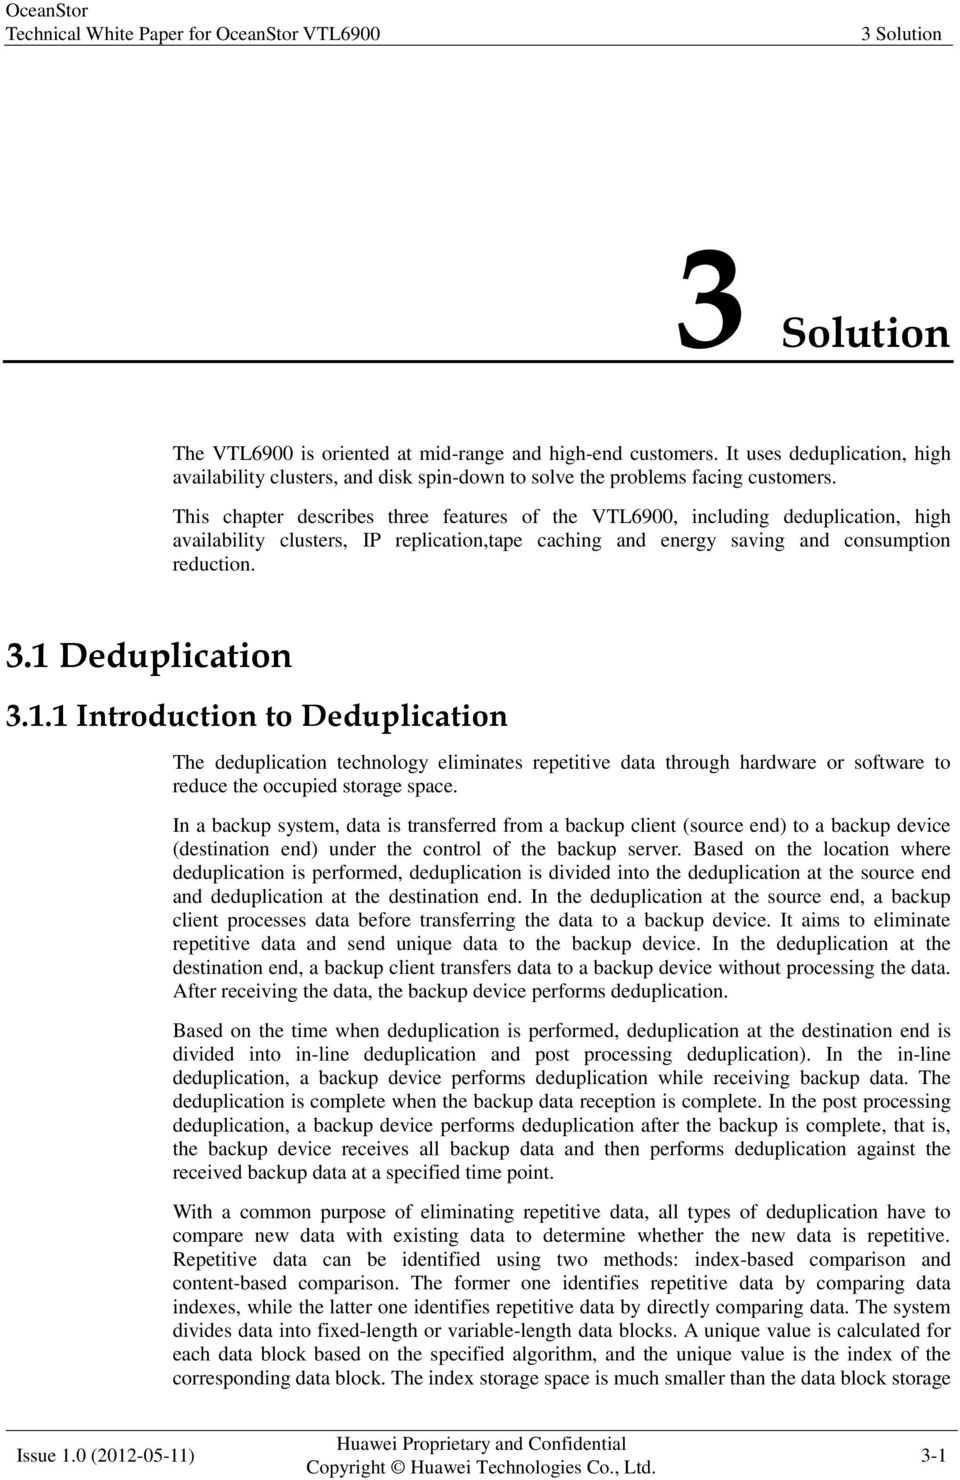 This chapter describes three features of the VTL6900, including deduplication, high availability clusters, IP replication,tape caching and energy saving and consumption reduction. 3.1 Deduplication 3.